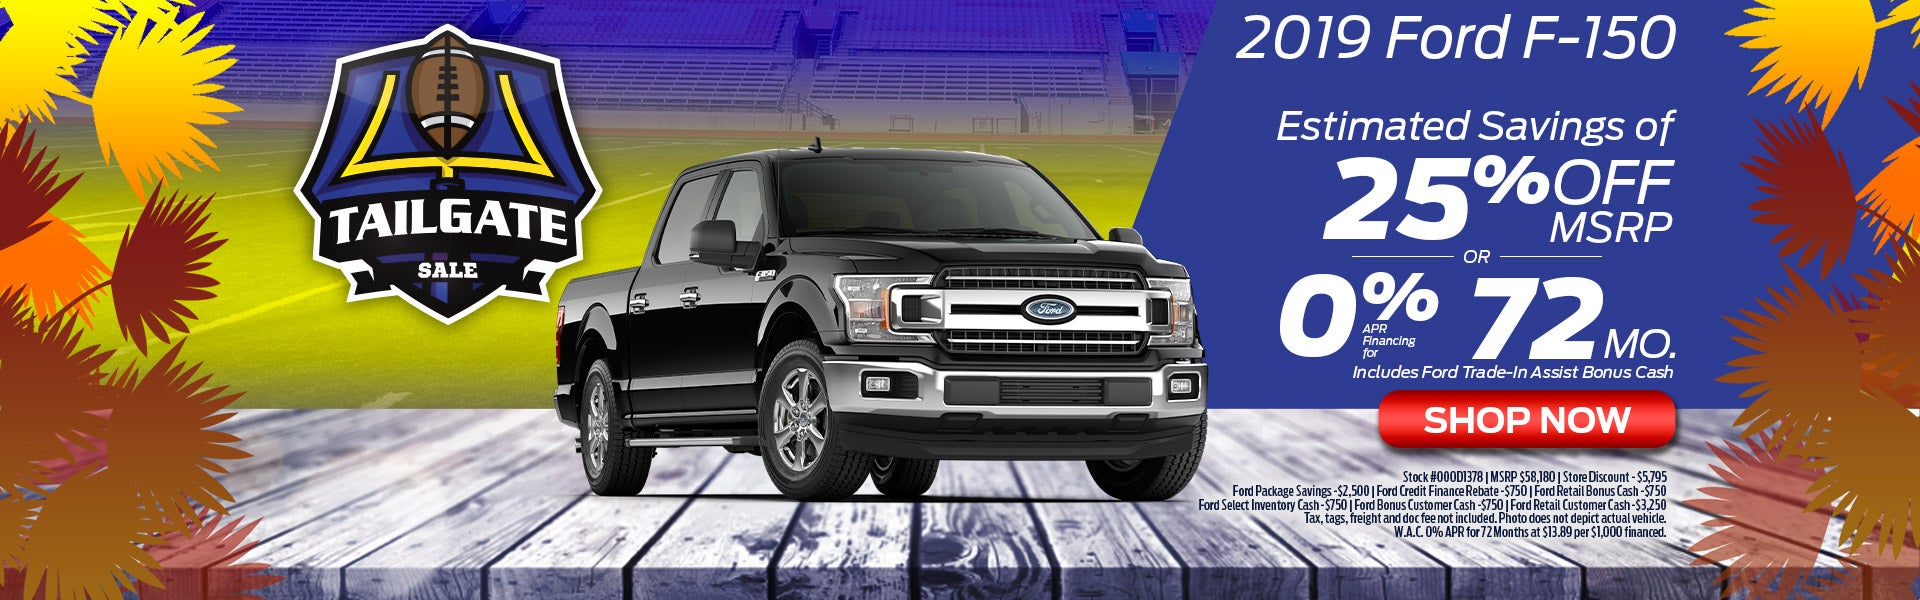 Ford Dealership Columbia Sc >> Local Ford Dealership Palmetto Ford New Ford Cars And Trucks